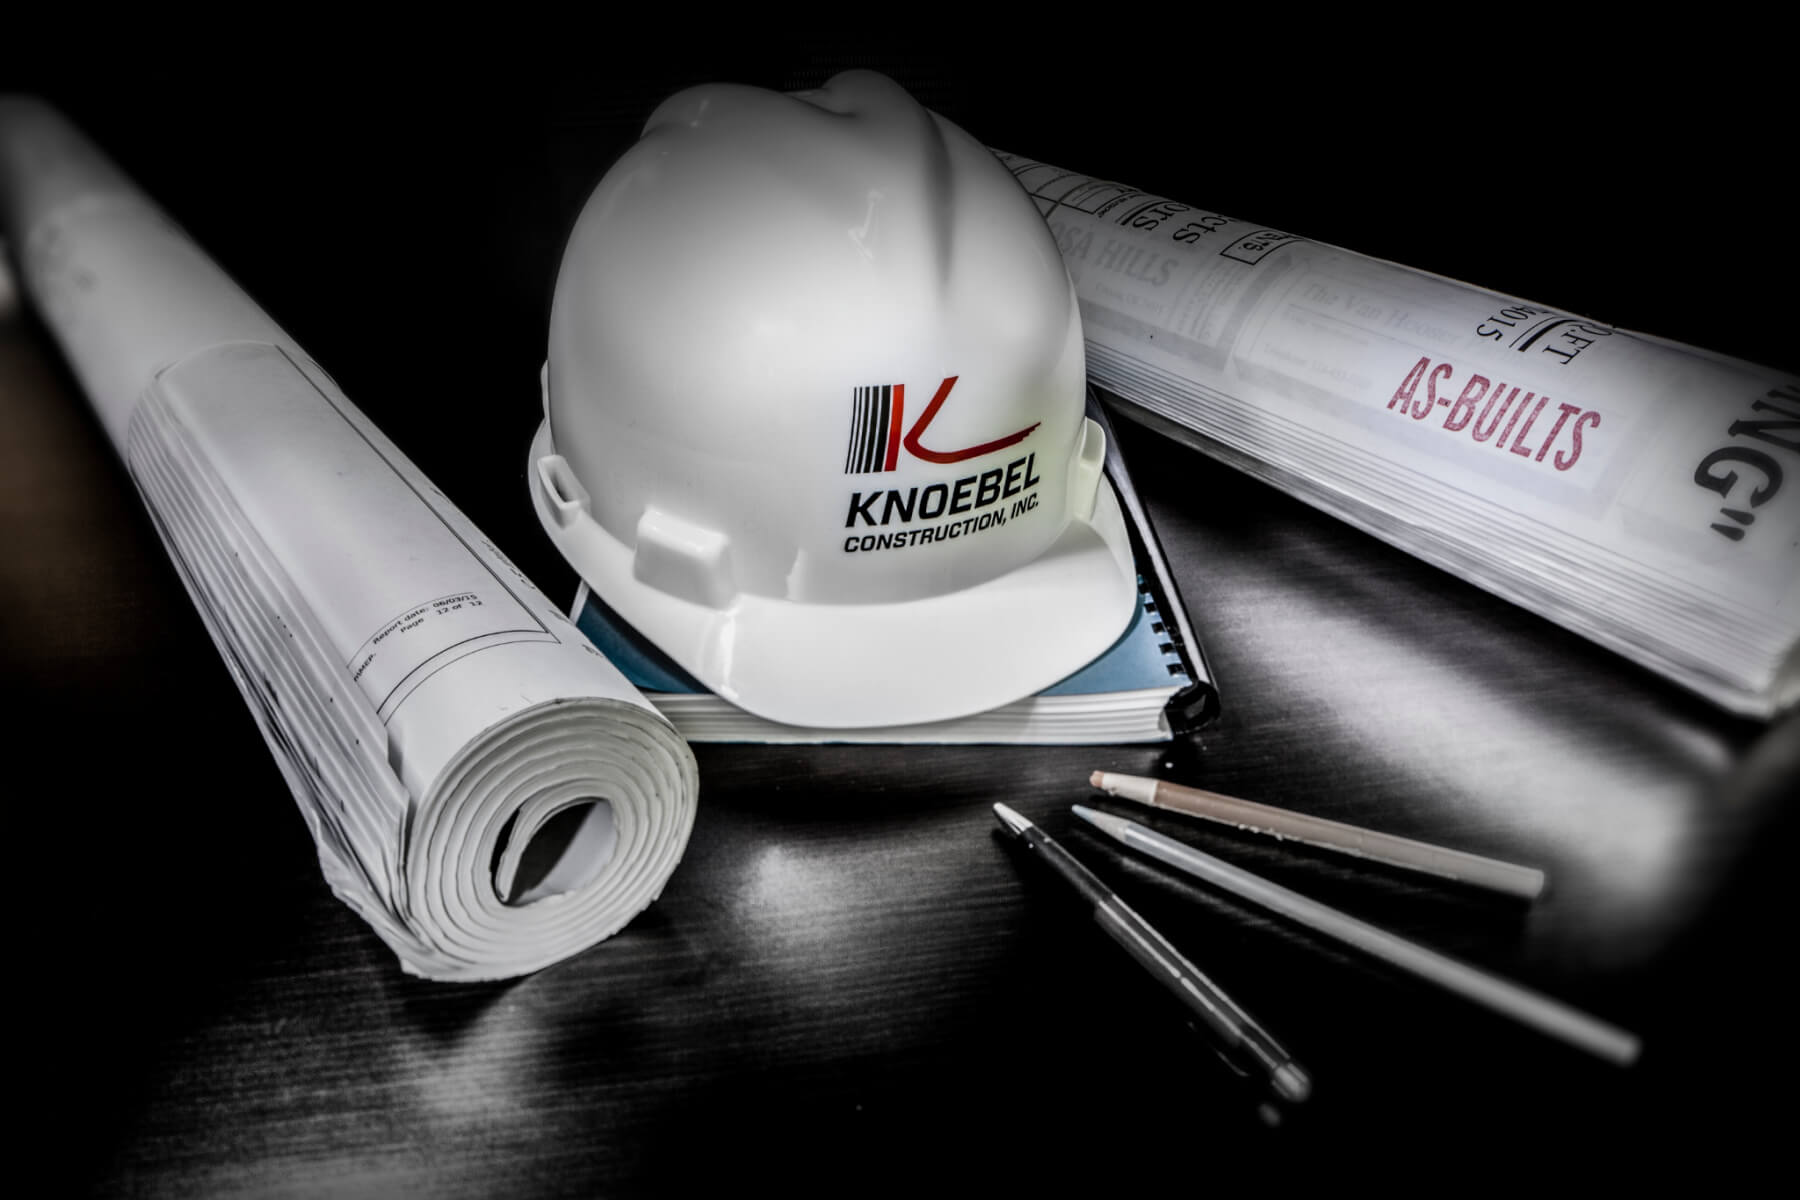 Knoebel Construction hires Jim Grzesik as Preconstruction Manager